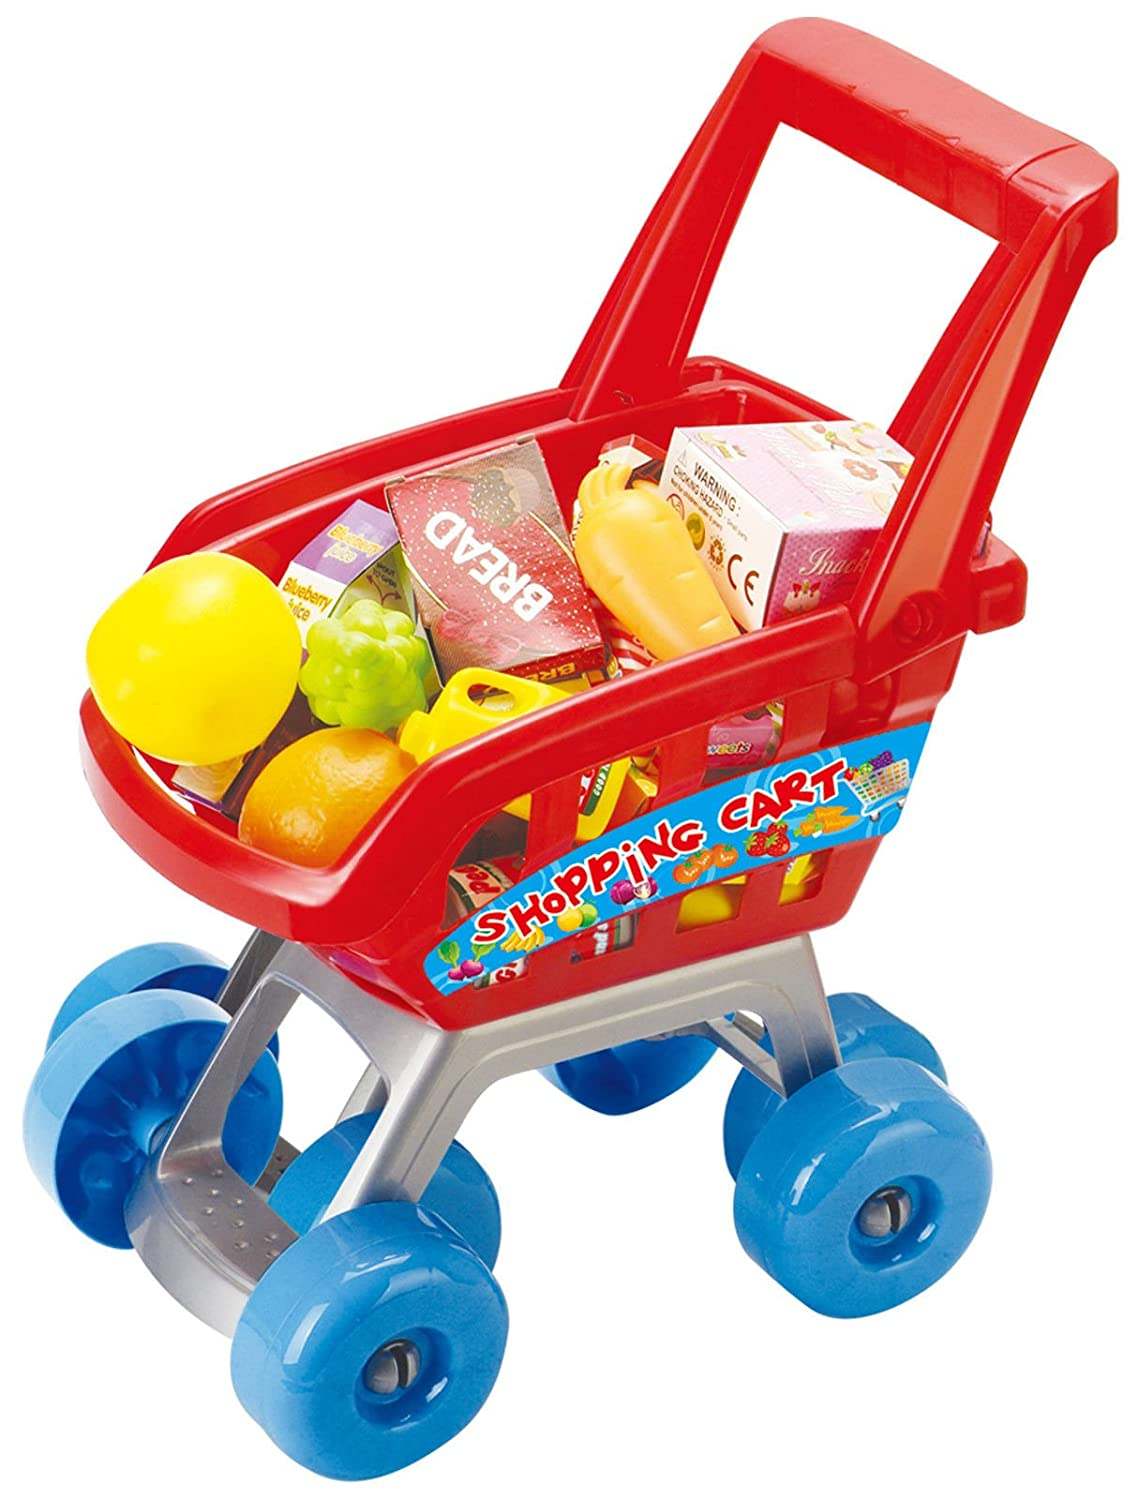 27 Piece Children's Kids Shopping Trolley Cart Role Playing Toy Set Plastic Fruit Boom Light